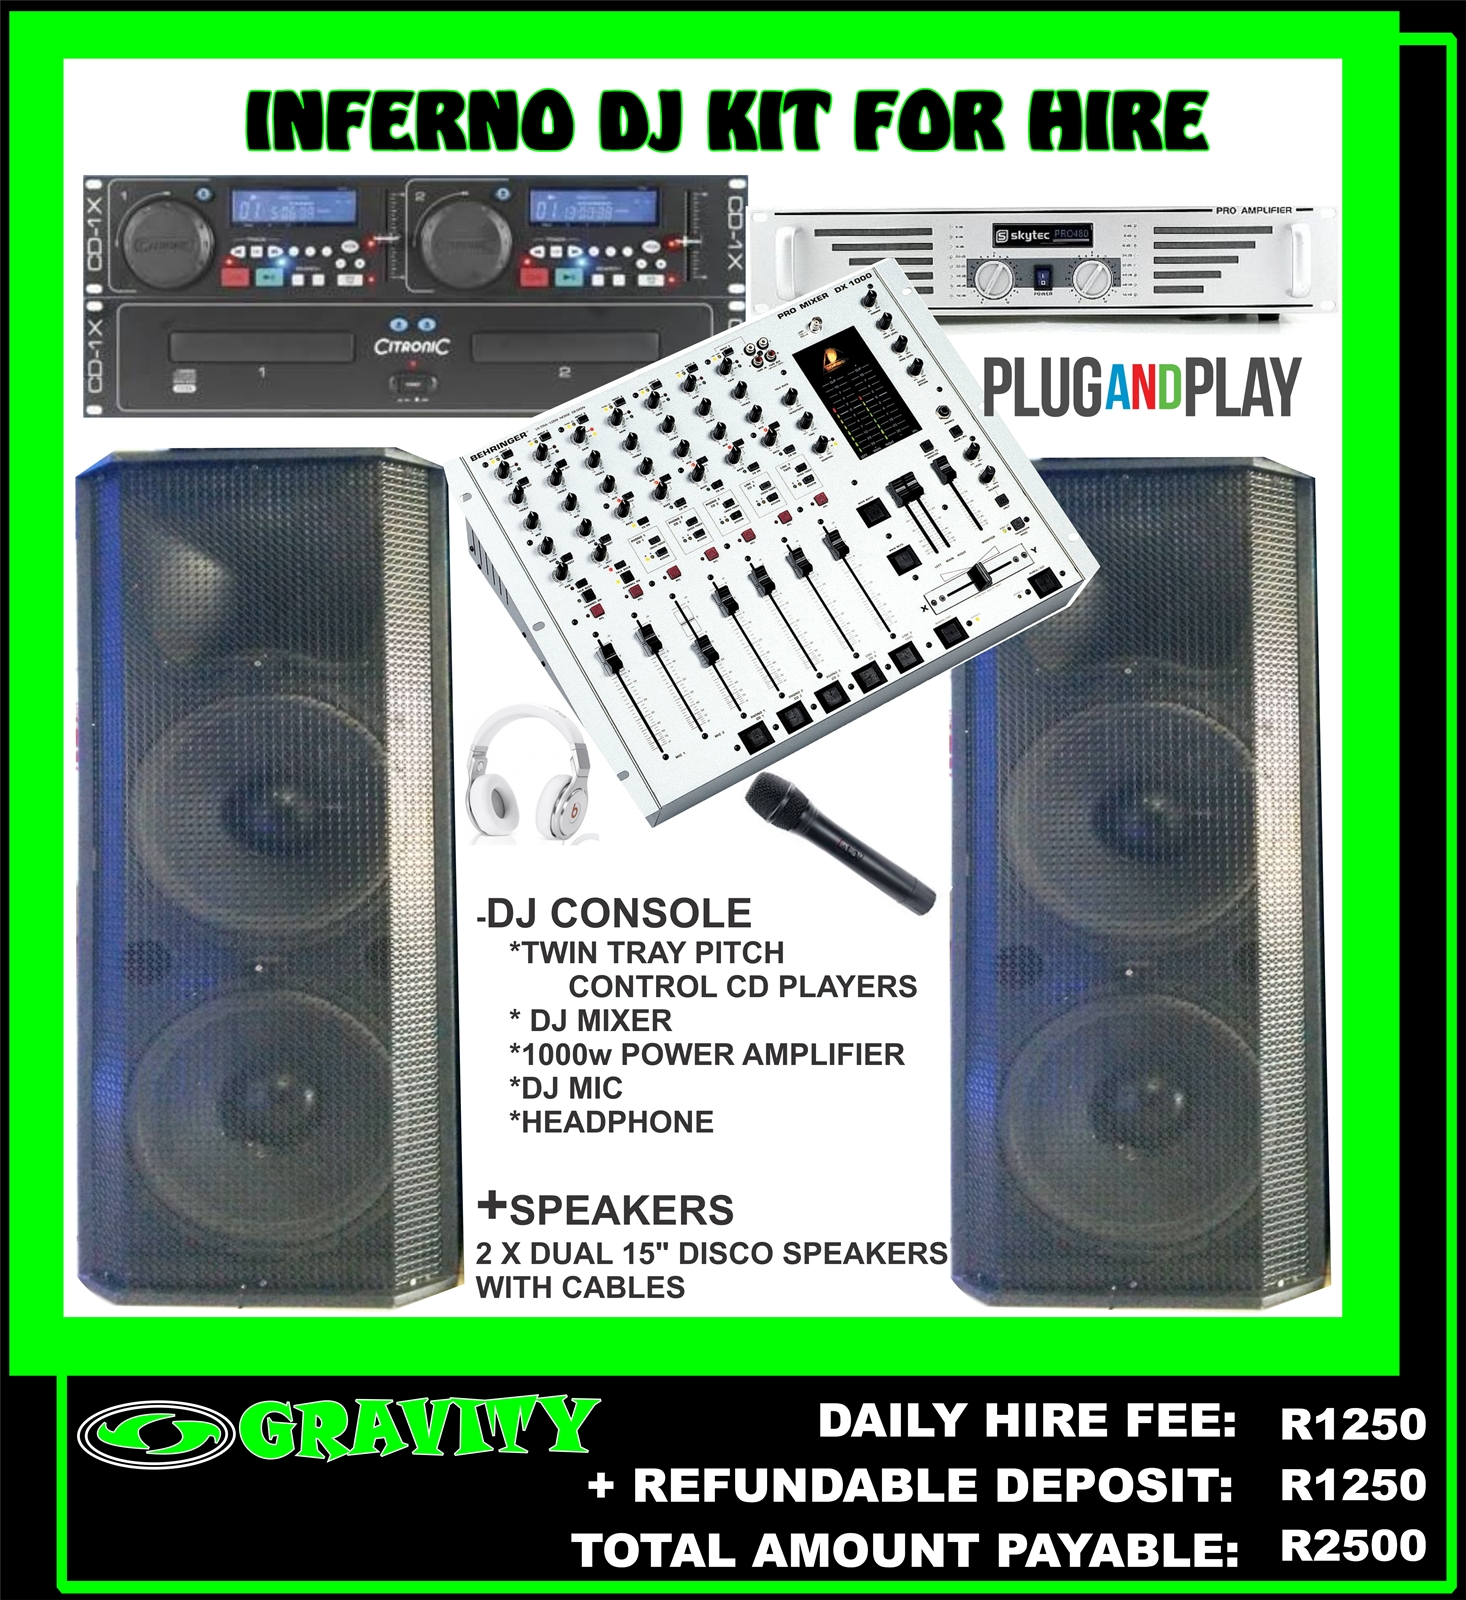 INFERNO DJ COMBO SOUND KIT FOR HIRE IN DURBAN AT GRAVITY DJ STORE 0315072736